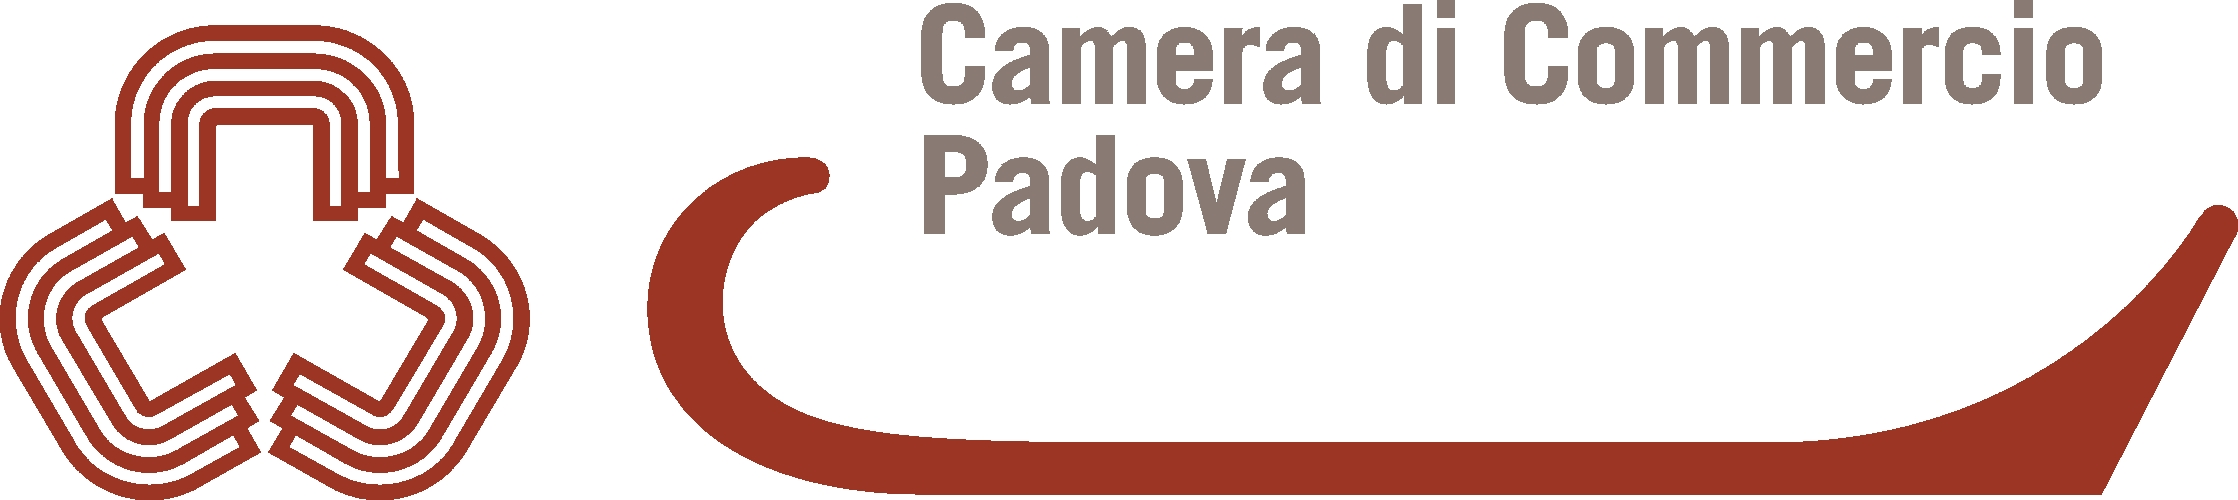 Camera di Commercio Padova